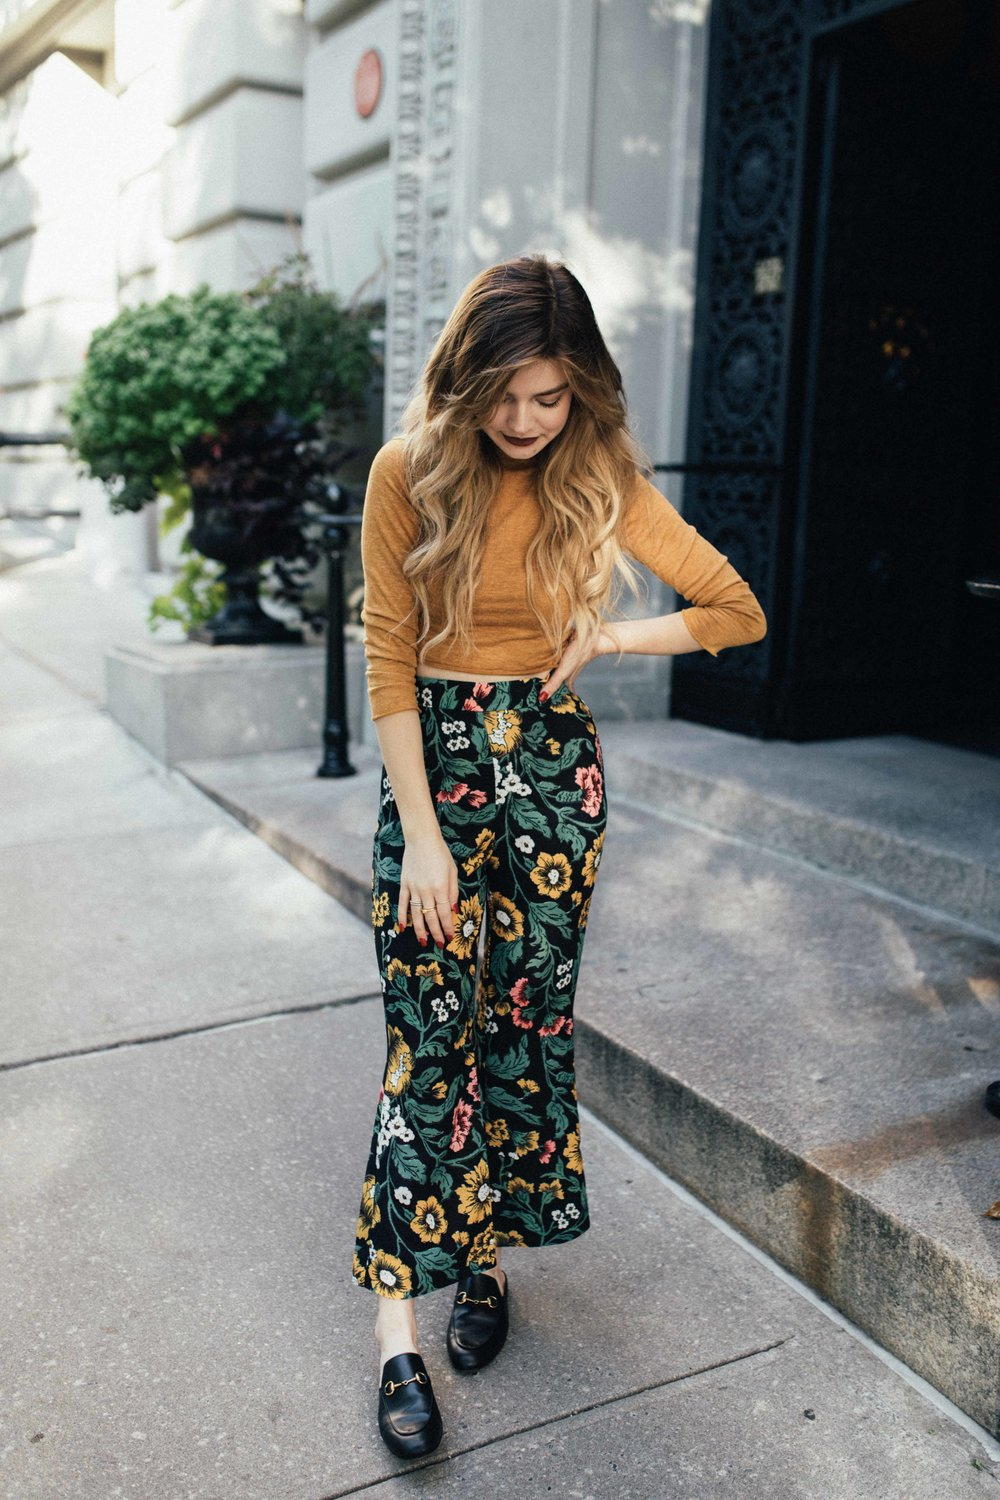 outfits_ (11 of 22).jpg